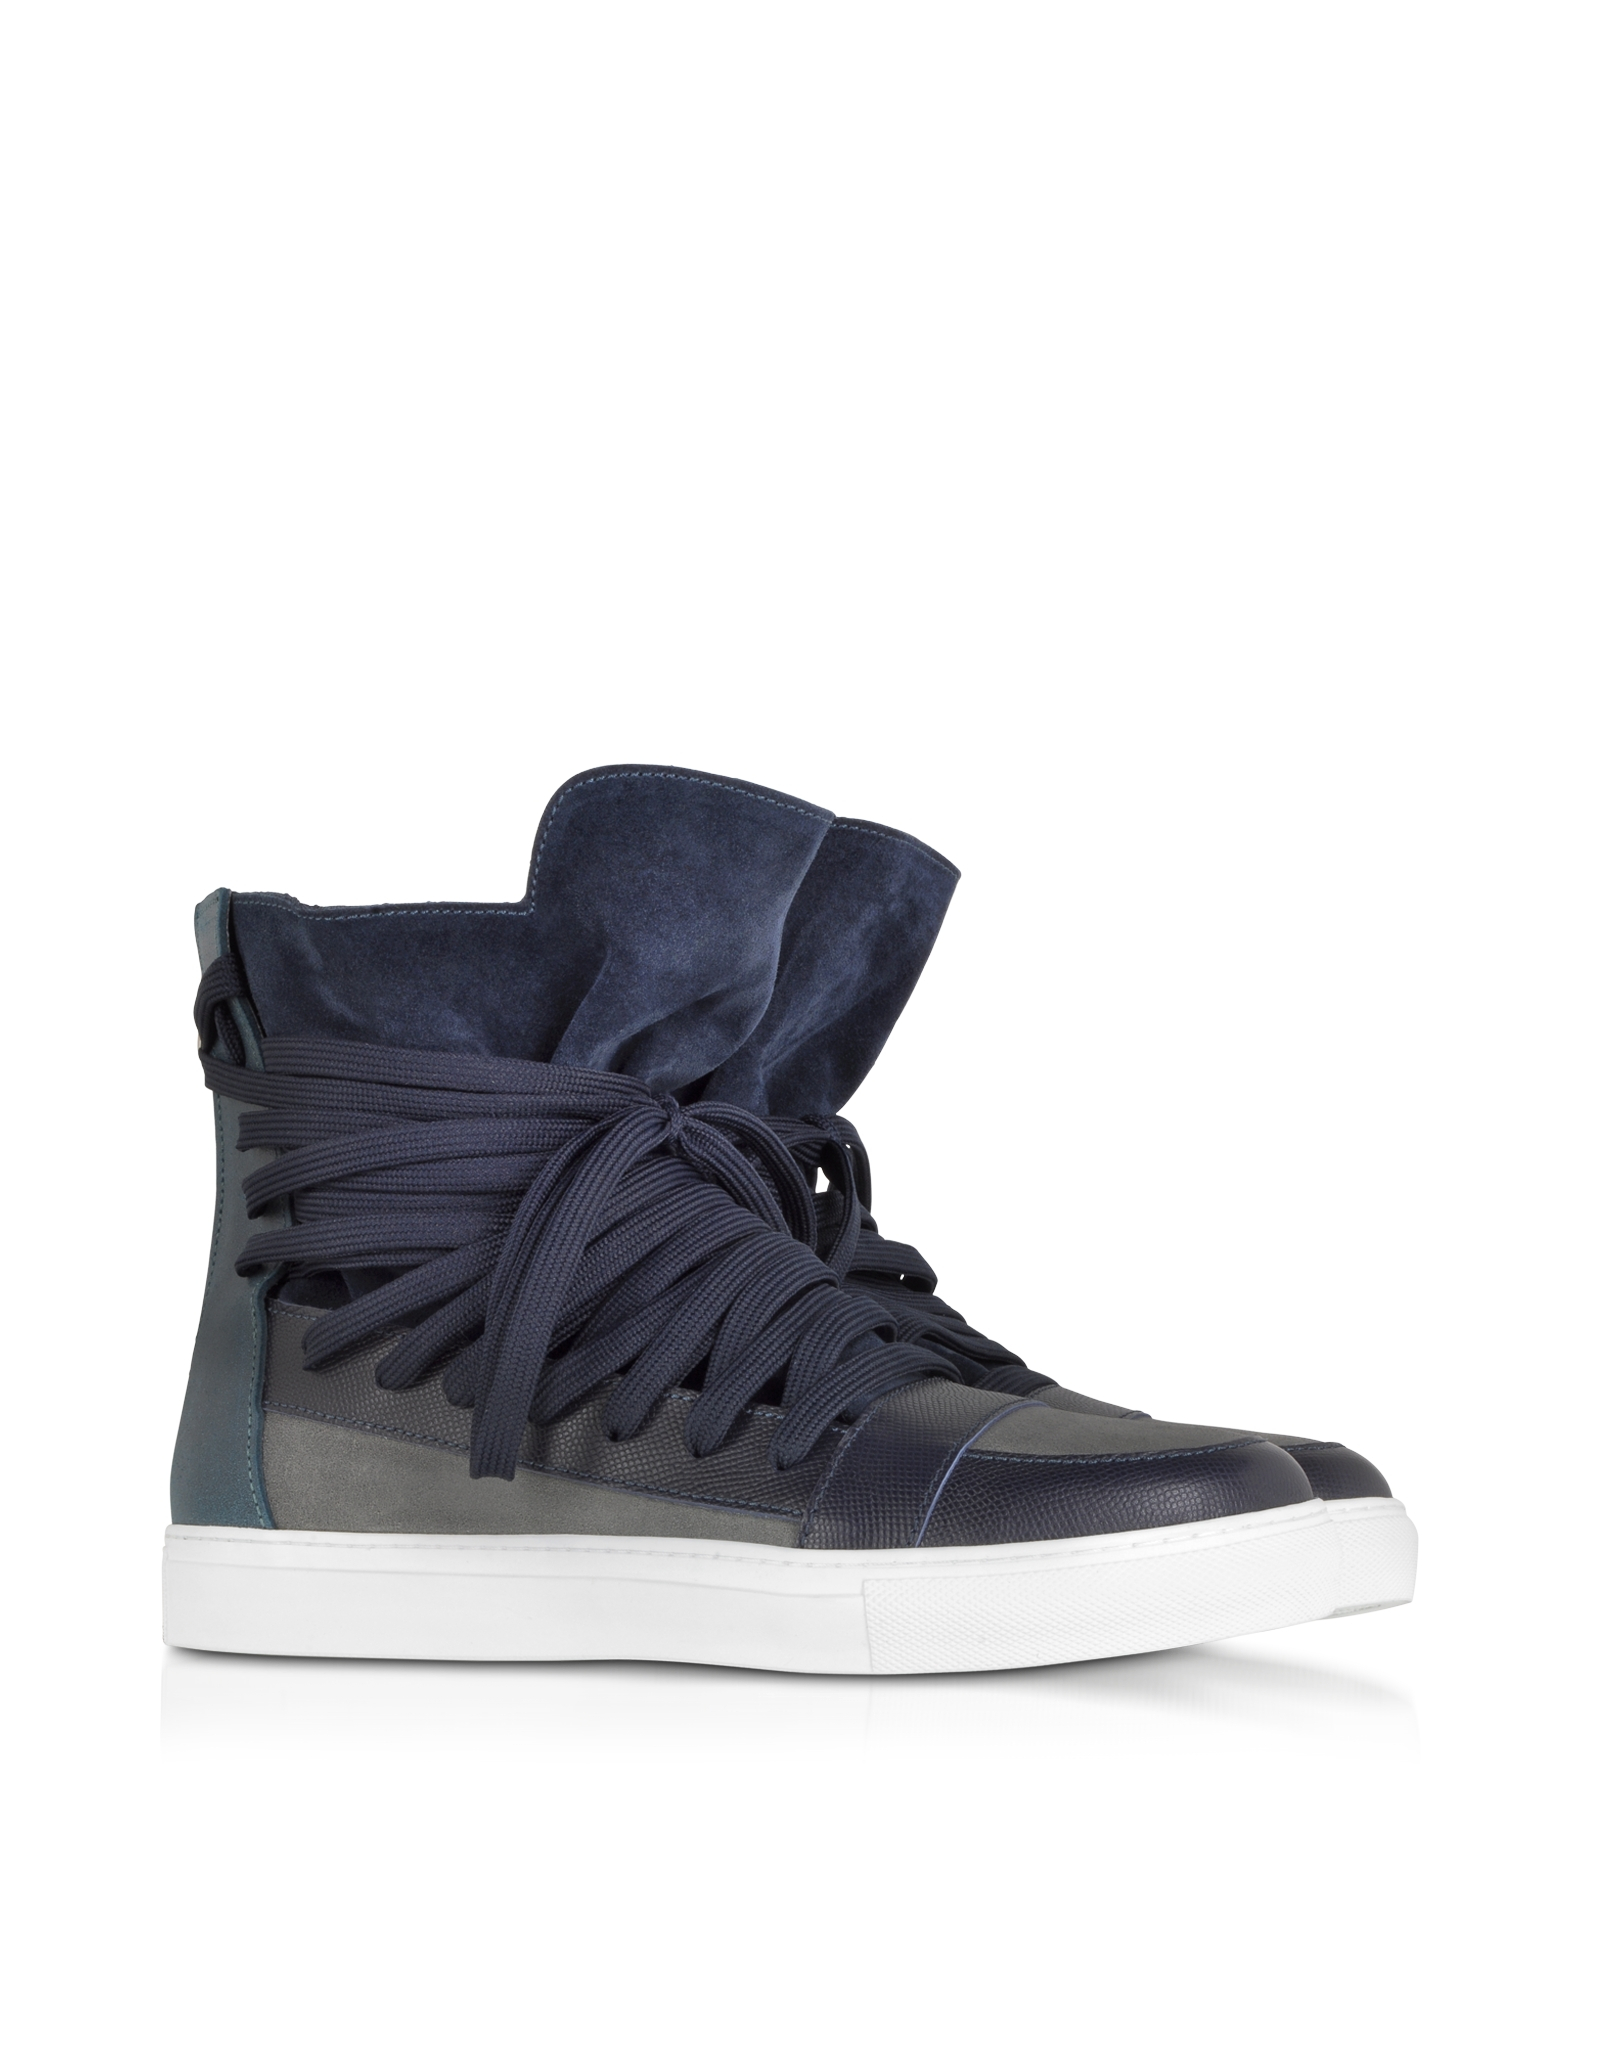 edf152cc70 Lyst - Kris Van Assche Multi Blue Multilaces High Top Sneaker in ...